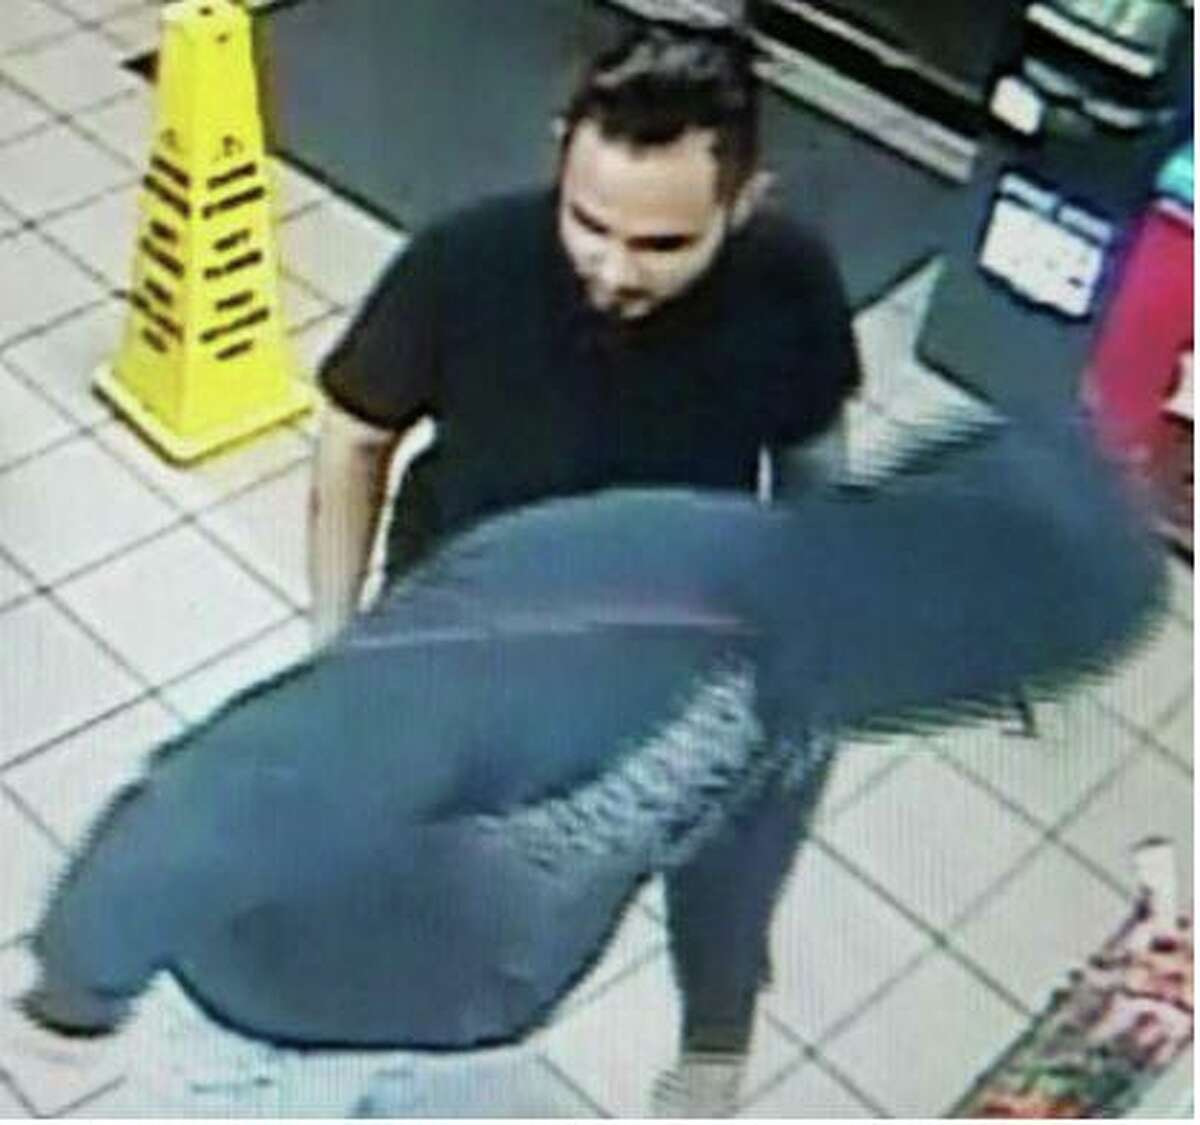 These two men are sought by Laredo police in connection with a robbery that occurred Jan 12. in the 3400 block of North Arkansas Avenue.